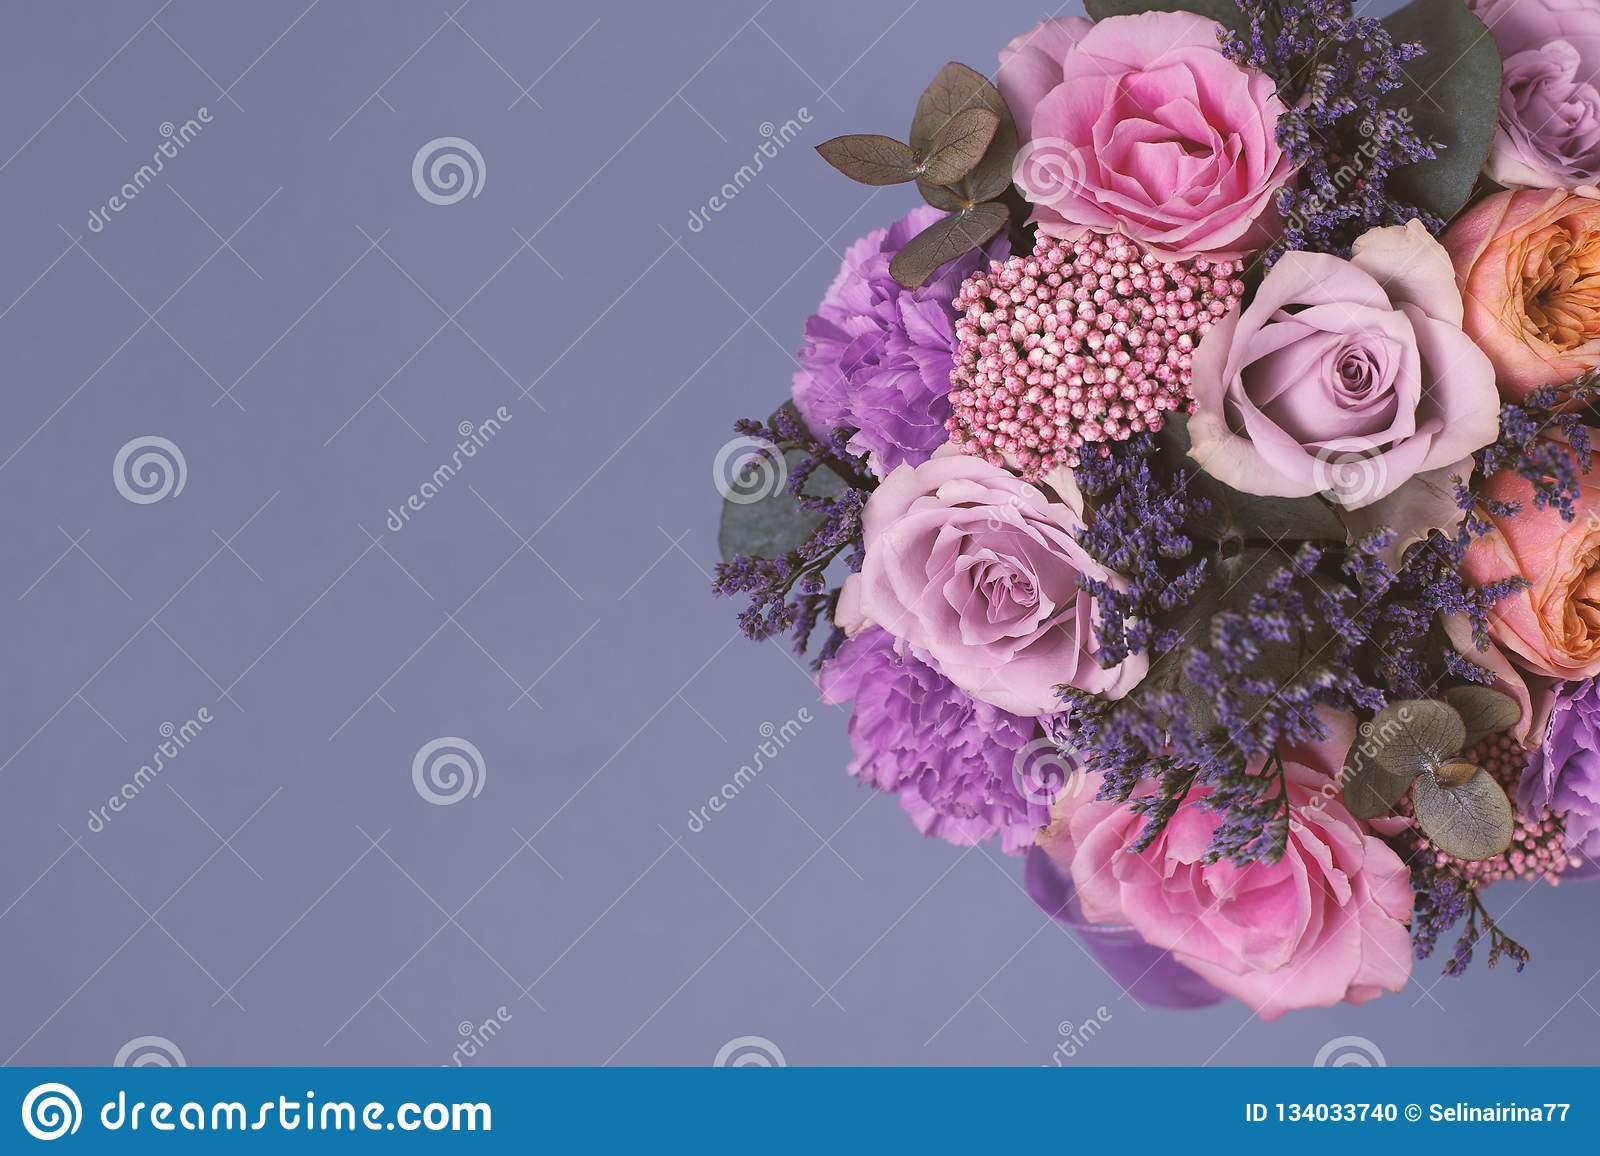 Closeup beautiful flowers in pastel colors on a blue background. Greeting card, Mom`s day, wedding invitation, birthday